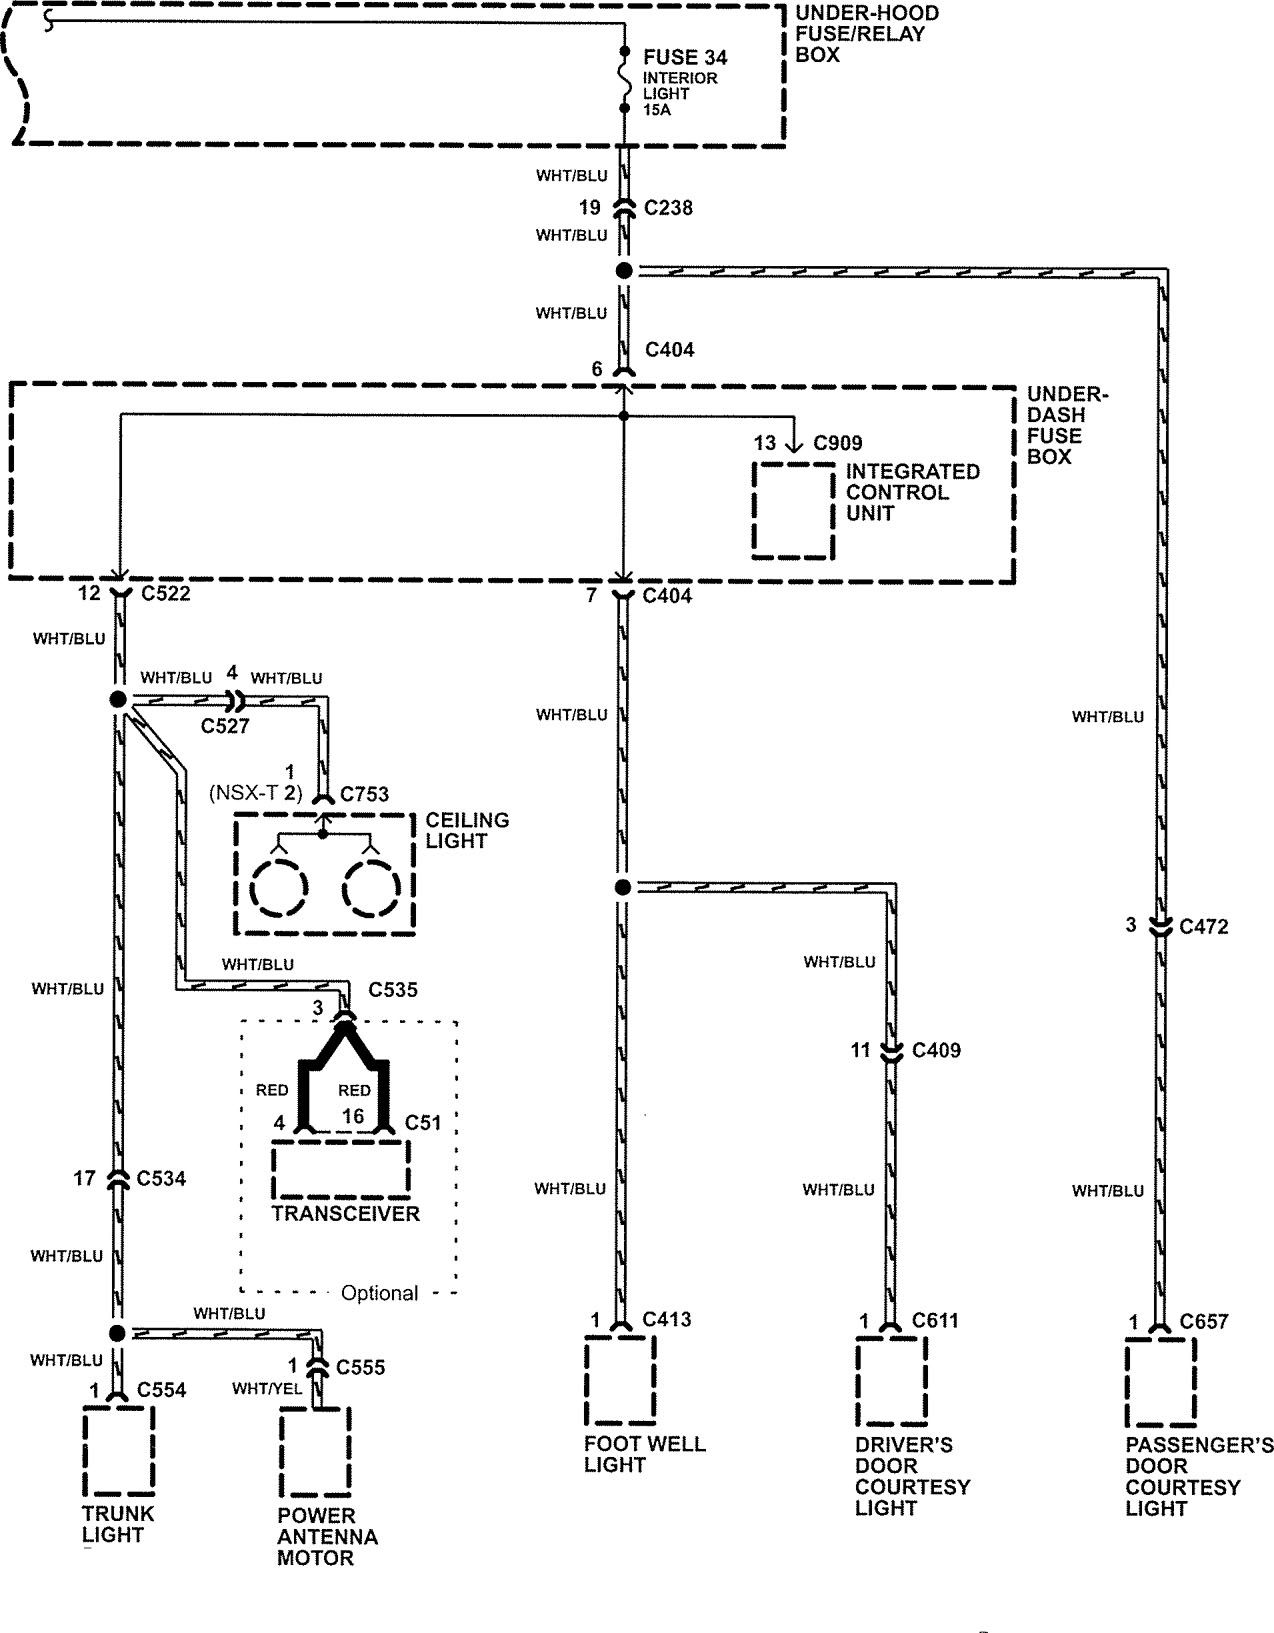 Wonderful nissan micra wiring diagram wonderful nissan micra wiring diagram